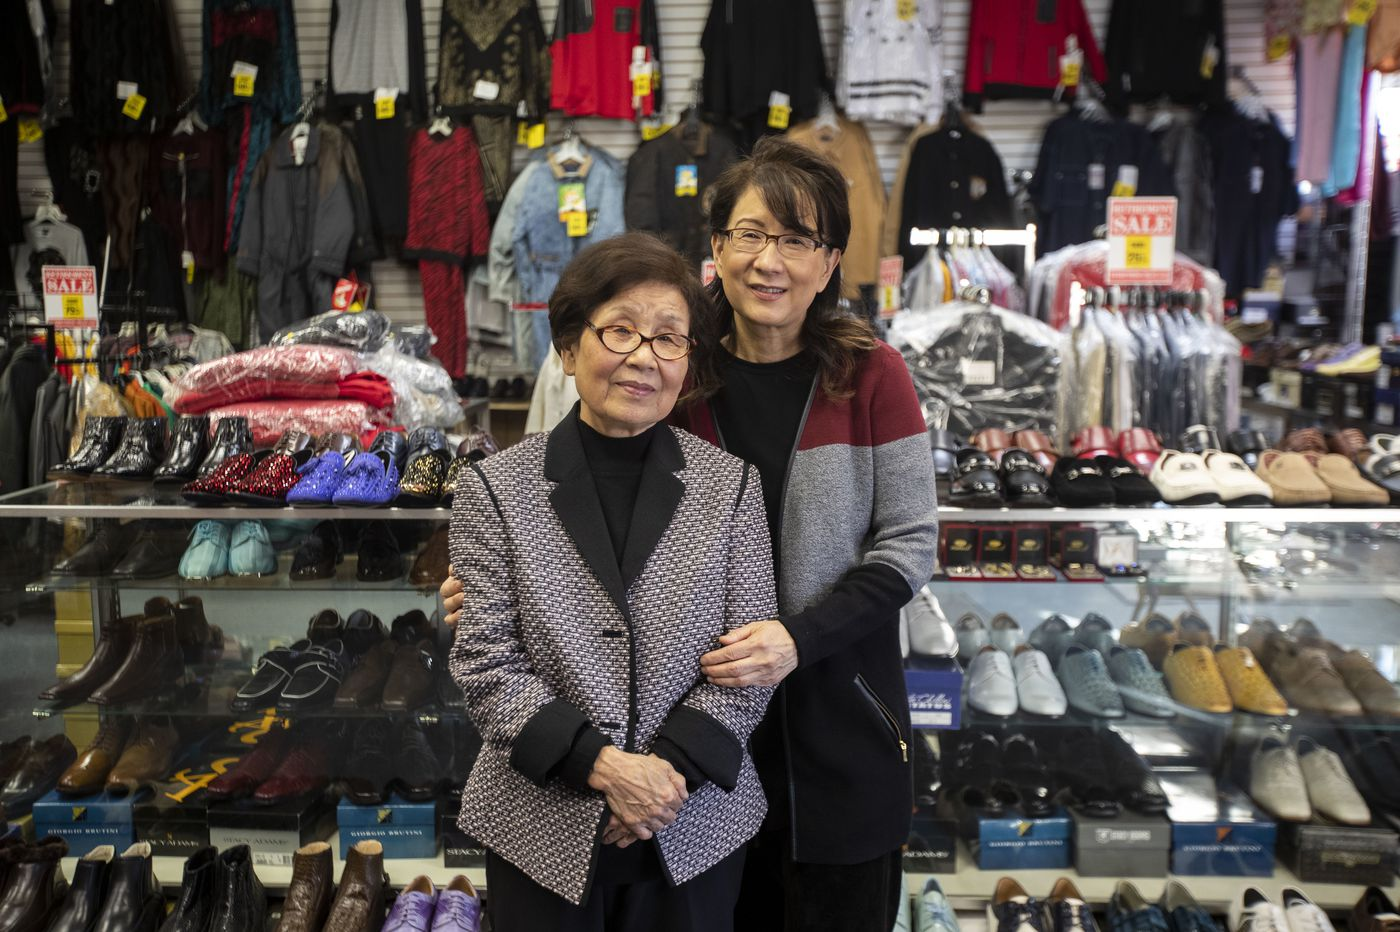 After 40 years of flashy suits and velvet loafers, Kim's Clothing in Germantown is closing